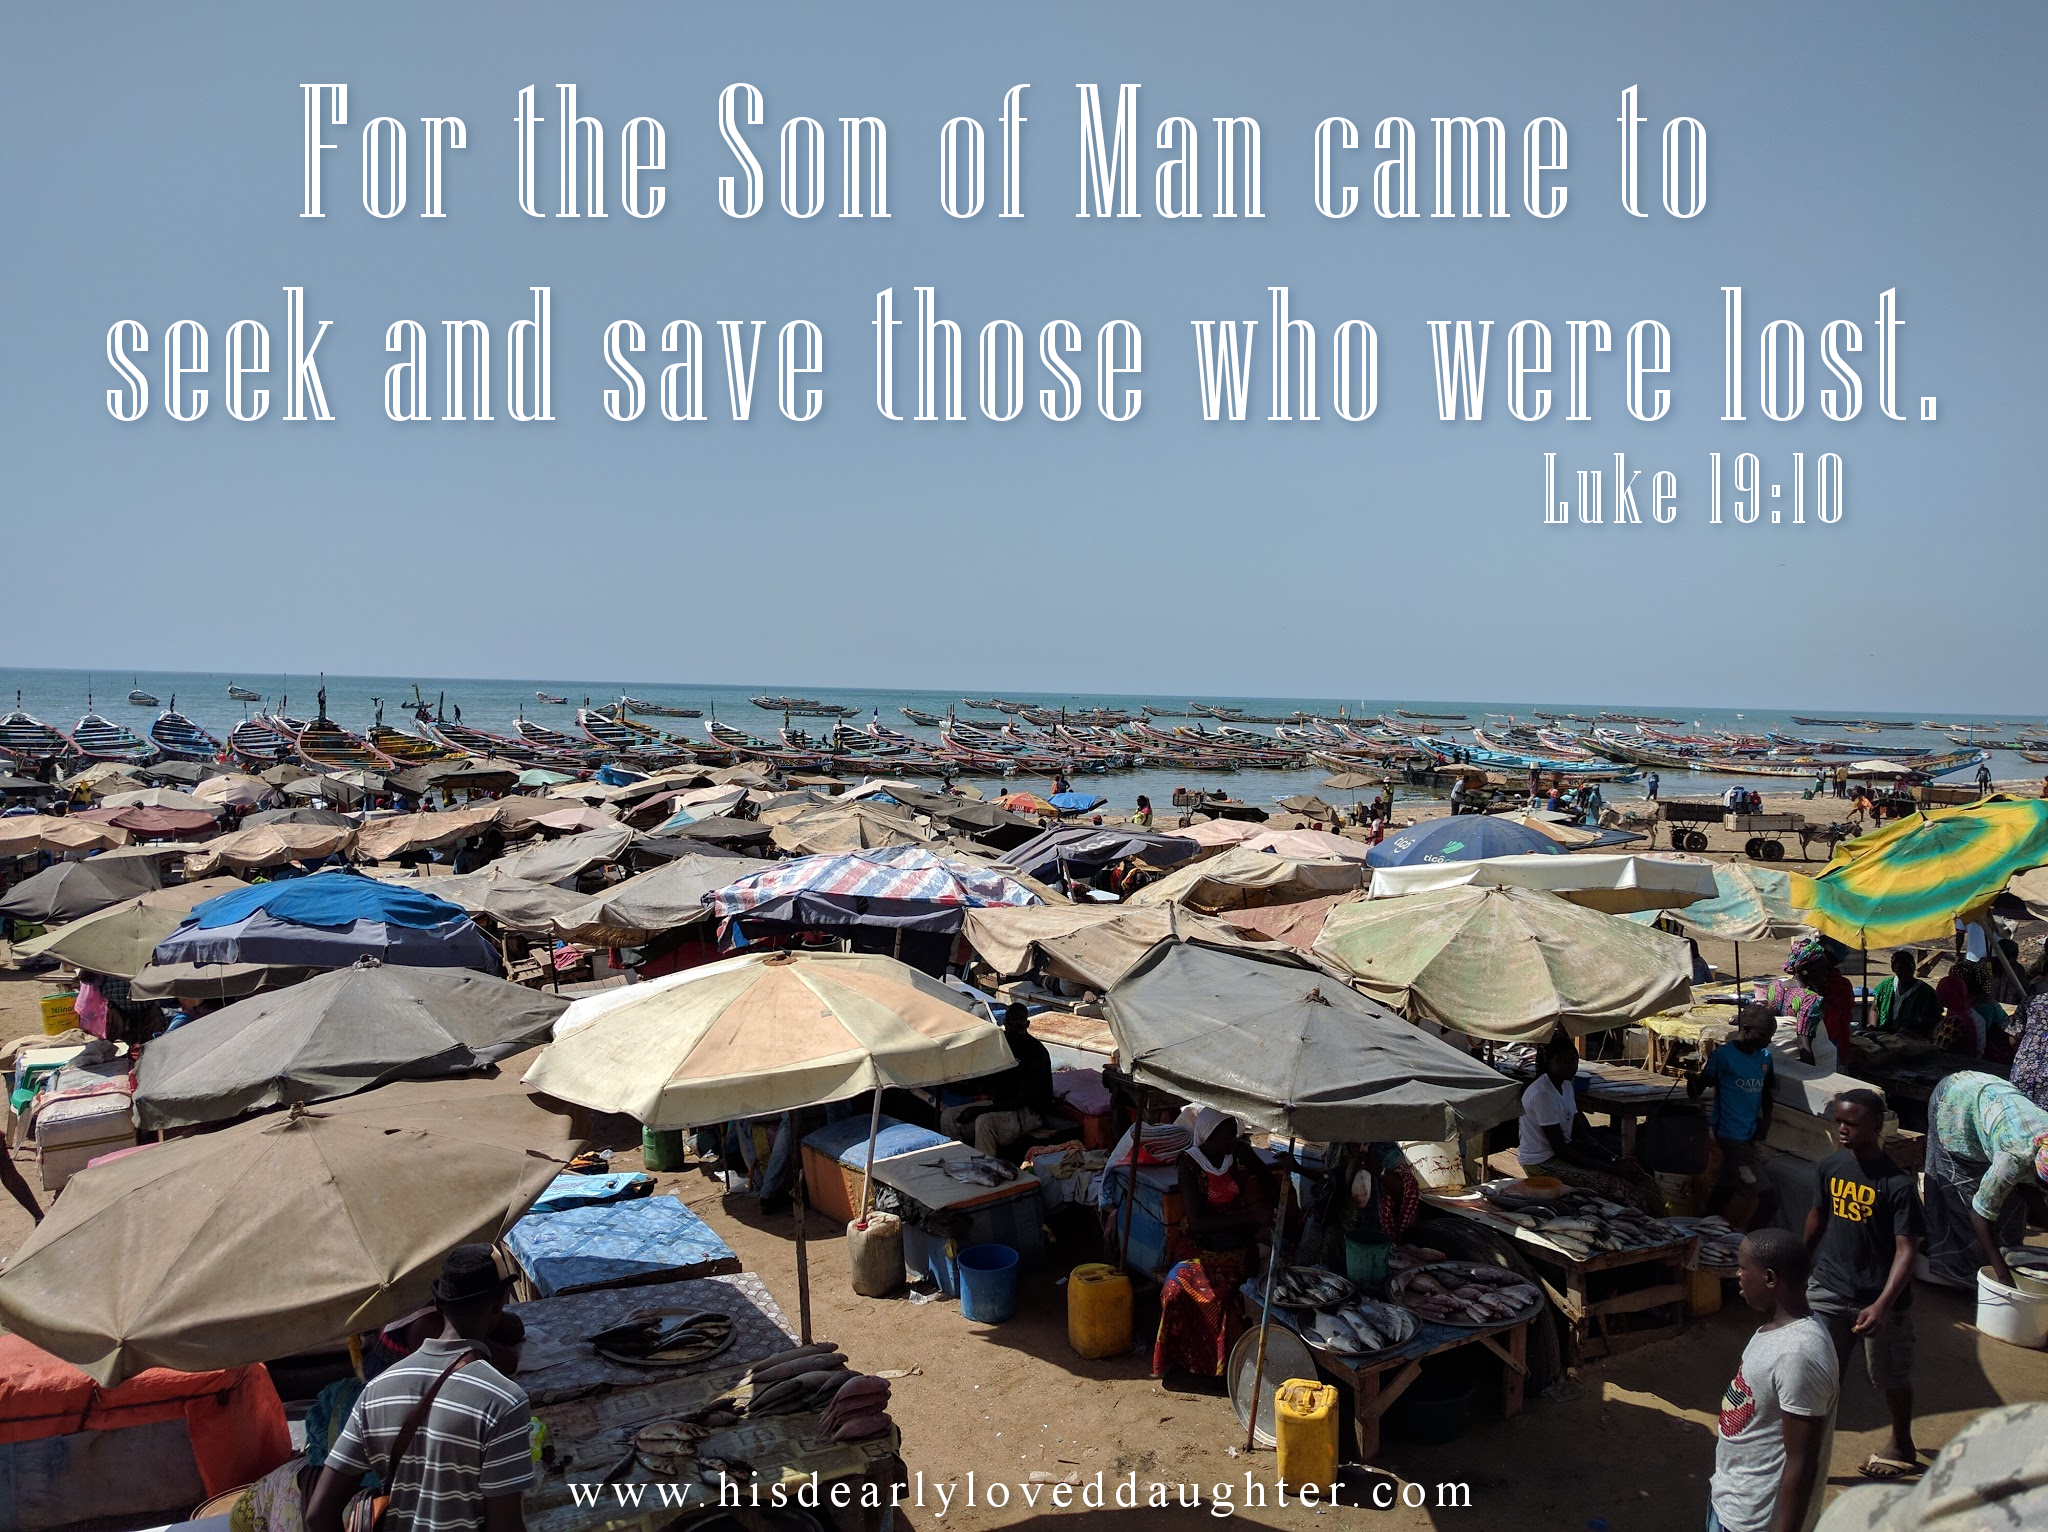 For the Son of Man came to seek and save those who were lost. Luke 19:10